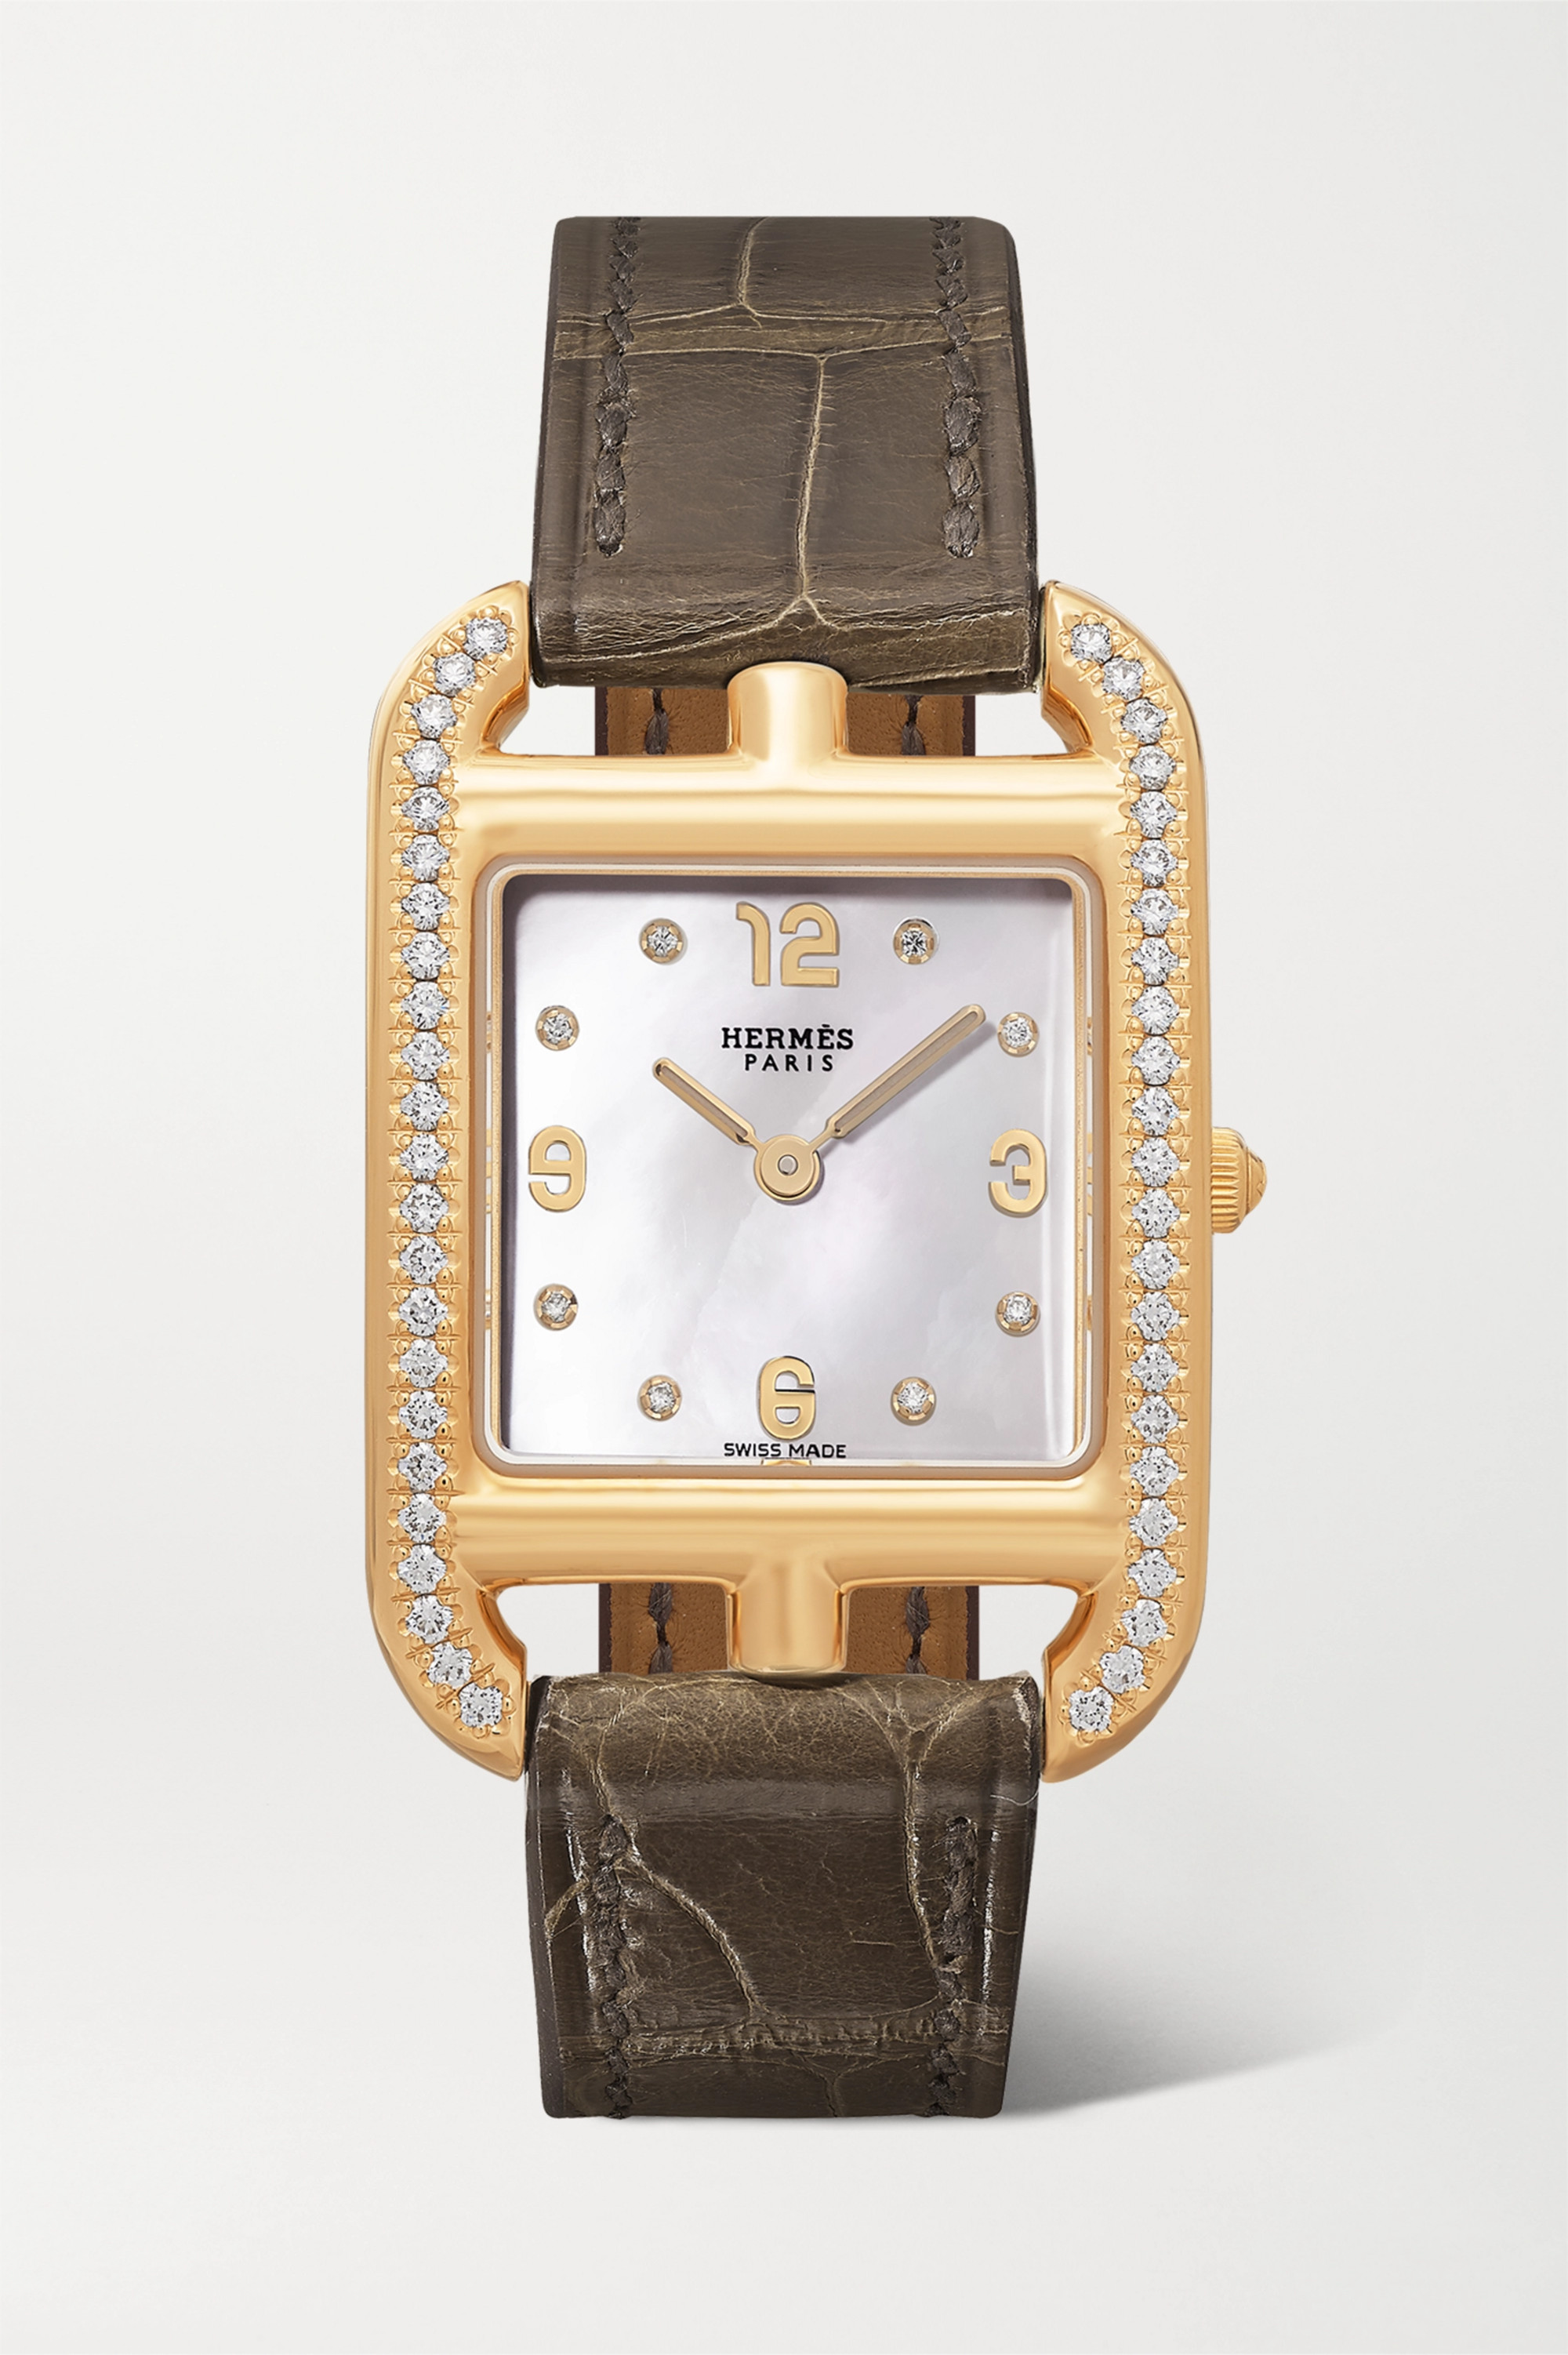 HERMÈS TIMEPIECES Cape Cod 23mm small 18-karat gold, alligator, mother-of-pearl and diamond watch